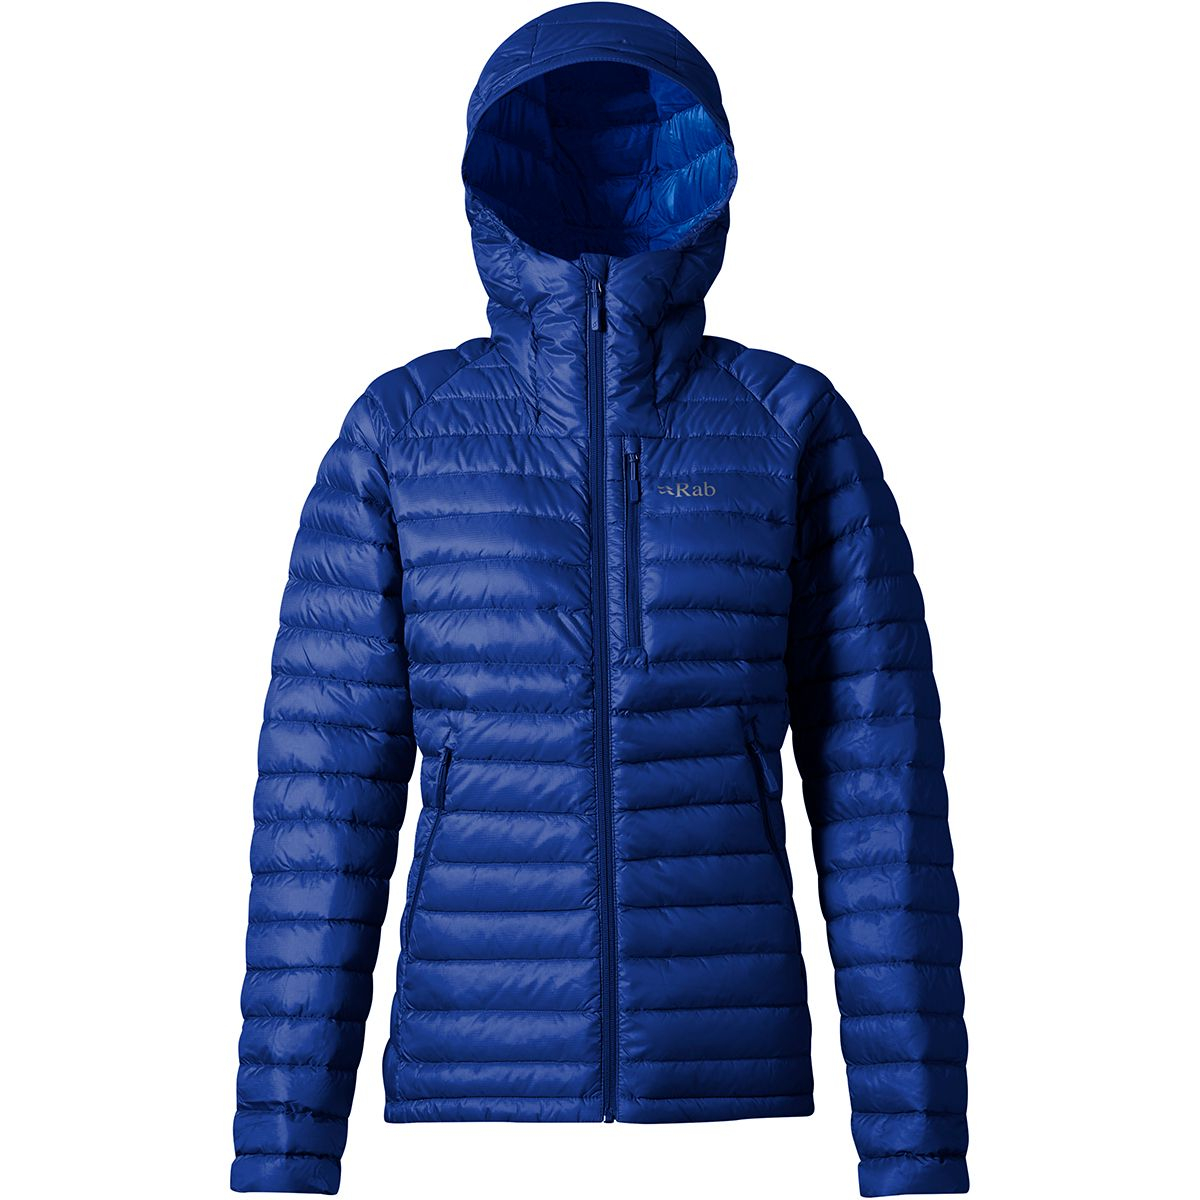 Rab Damen Microlight Alpine Long Jacke (Größe XS, Blau) | Isolationsjacken > Damen